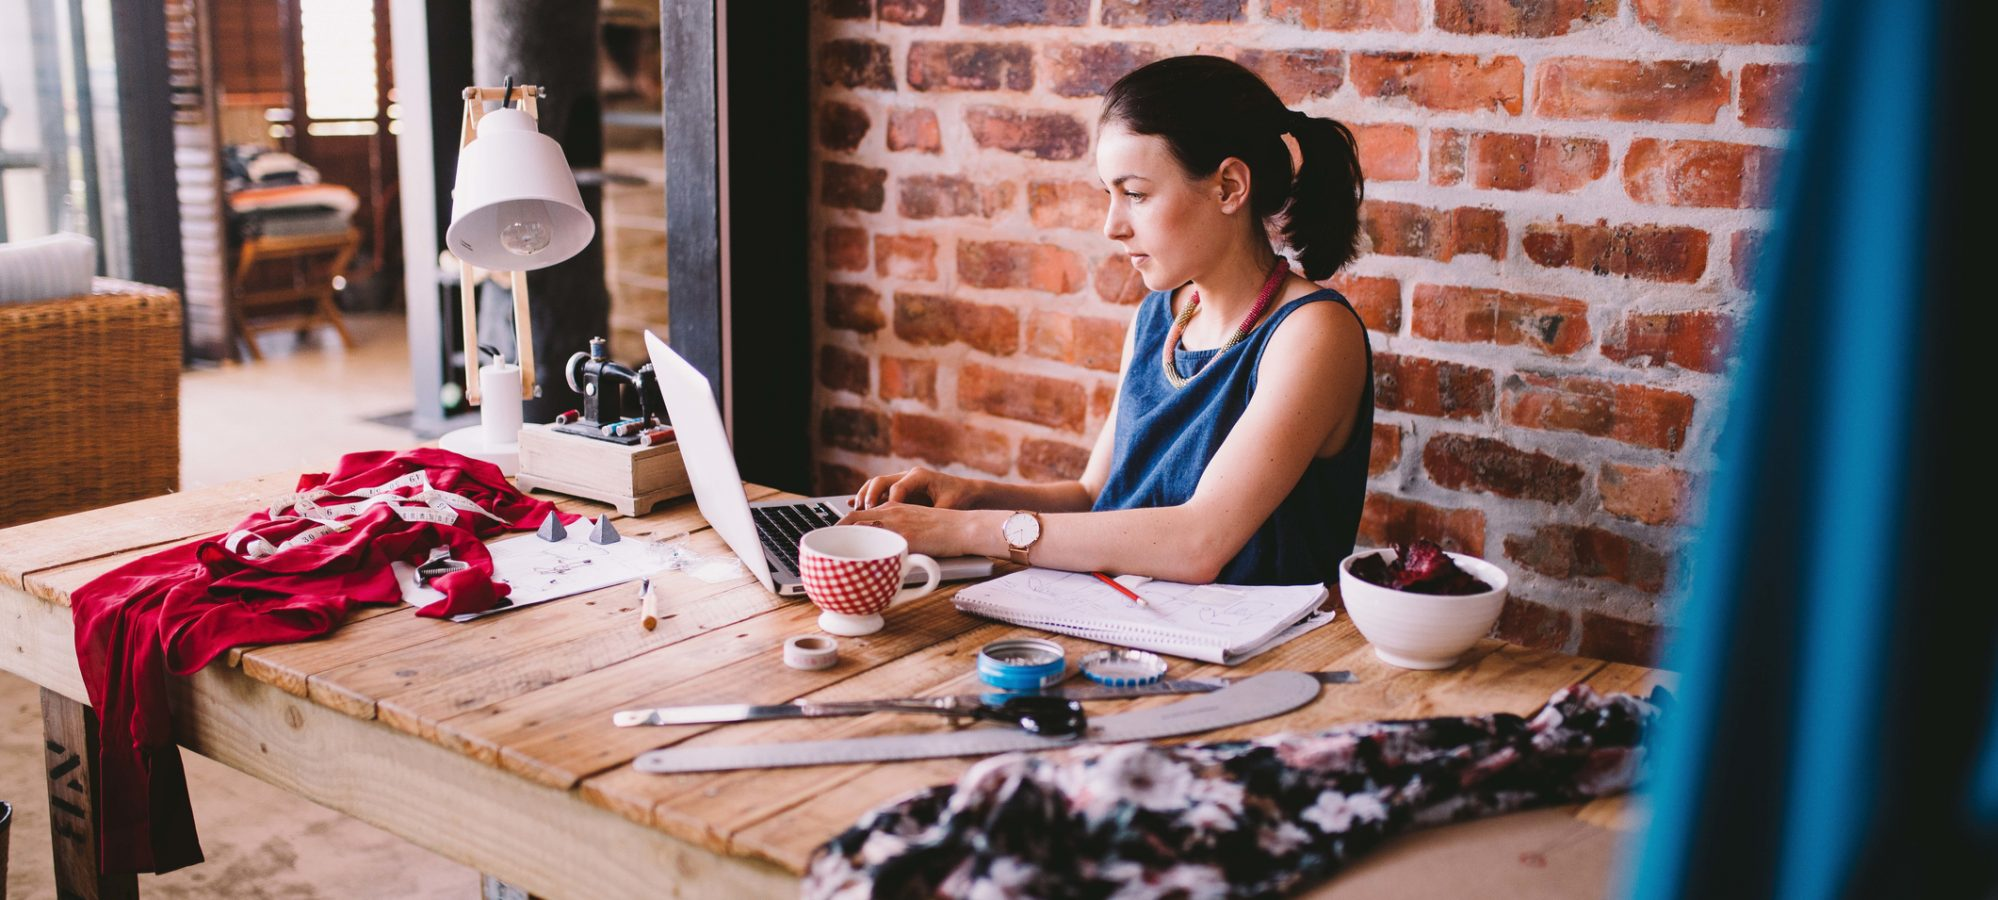 Image of young businesswoman working on laptop and documenting the fair market value of items